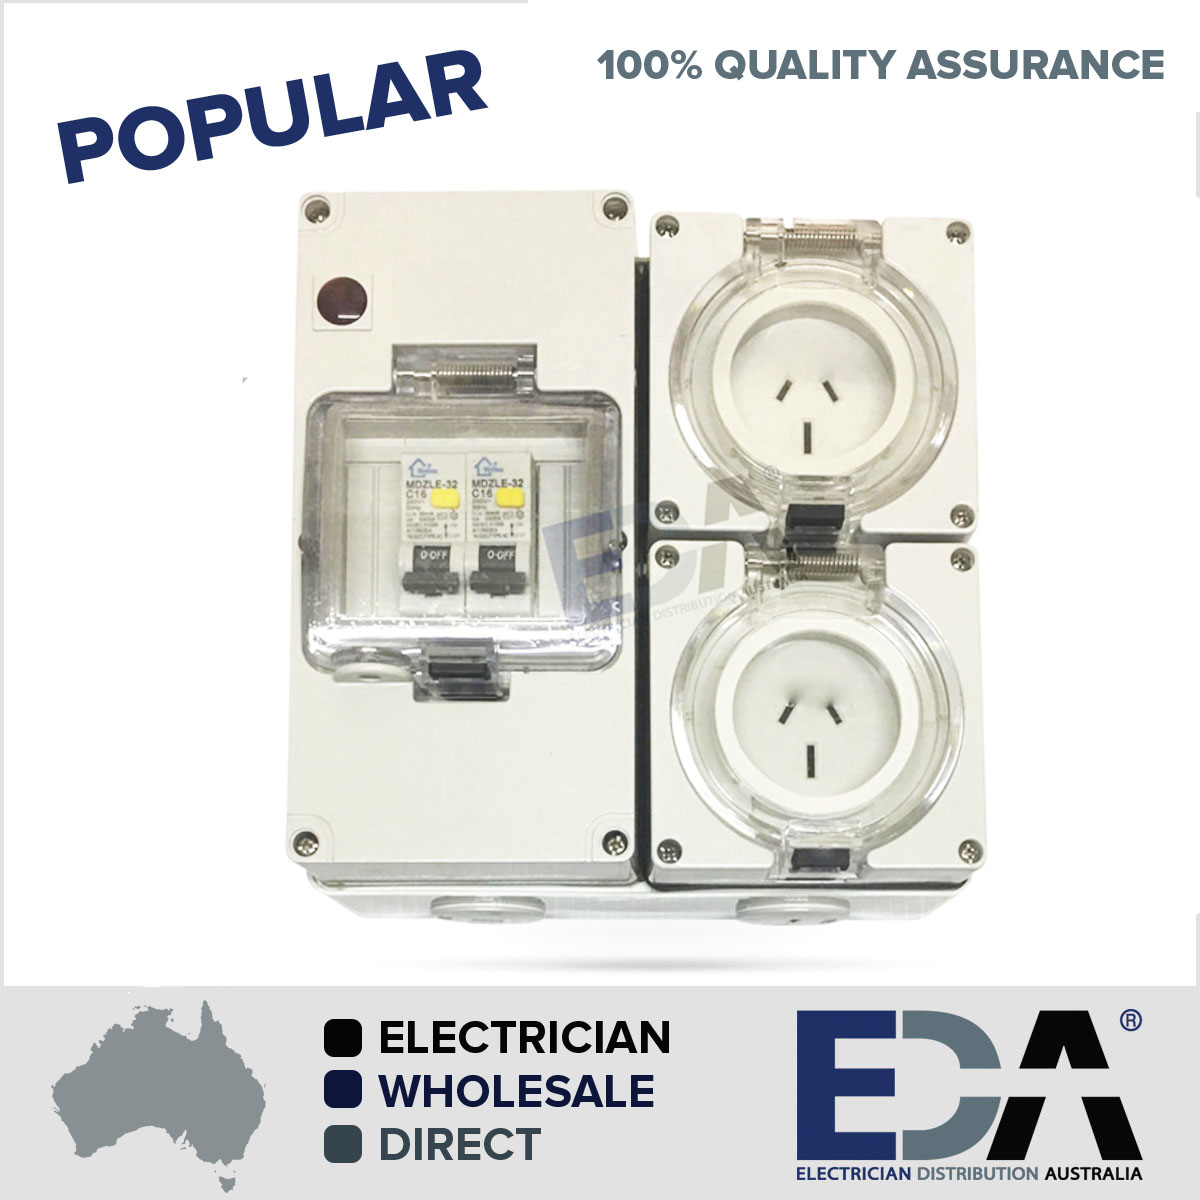 3 Pin 2 X 15 Amp Socket Rcd Combination Outlet 4 Pole Switchboard Rcbo Wiring Diagram 100 Quality Assured Electrical Gear Fully Tested To Australian Standards As 3123 5 Year Warranty All Products